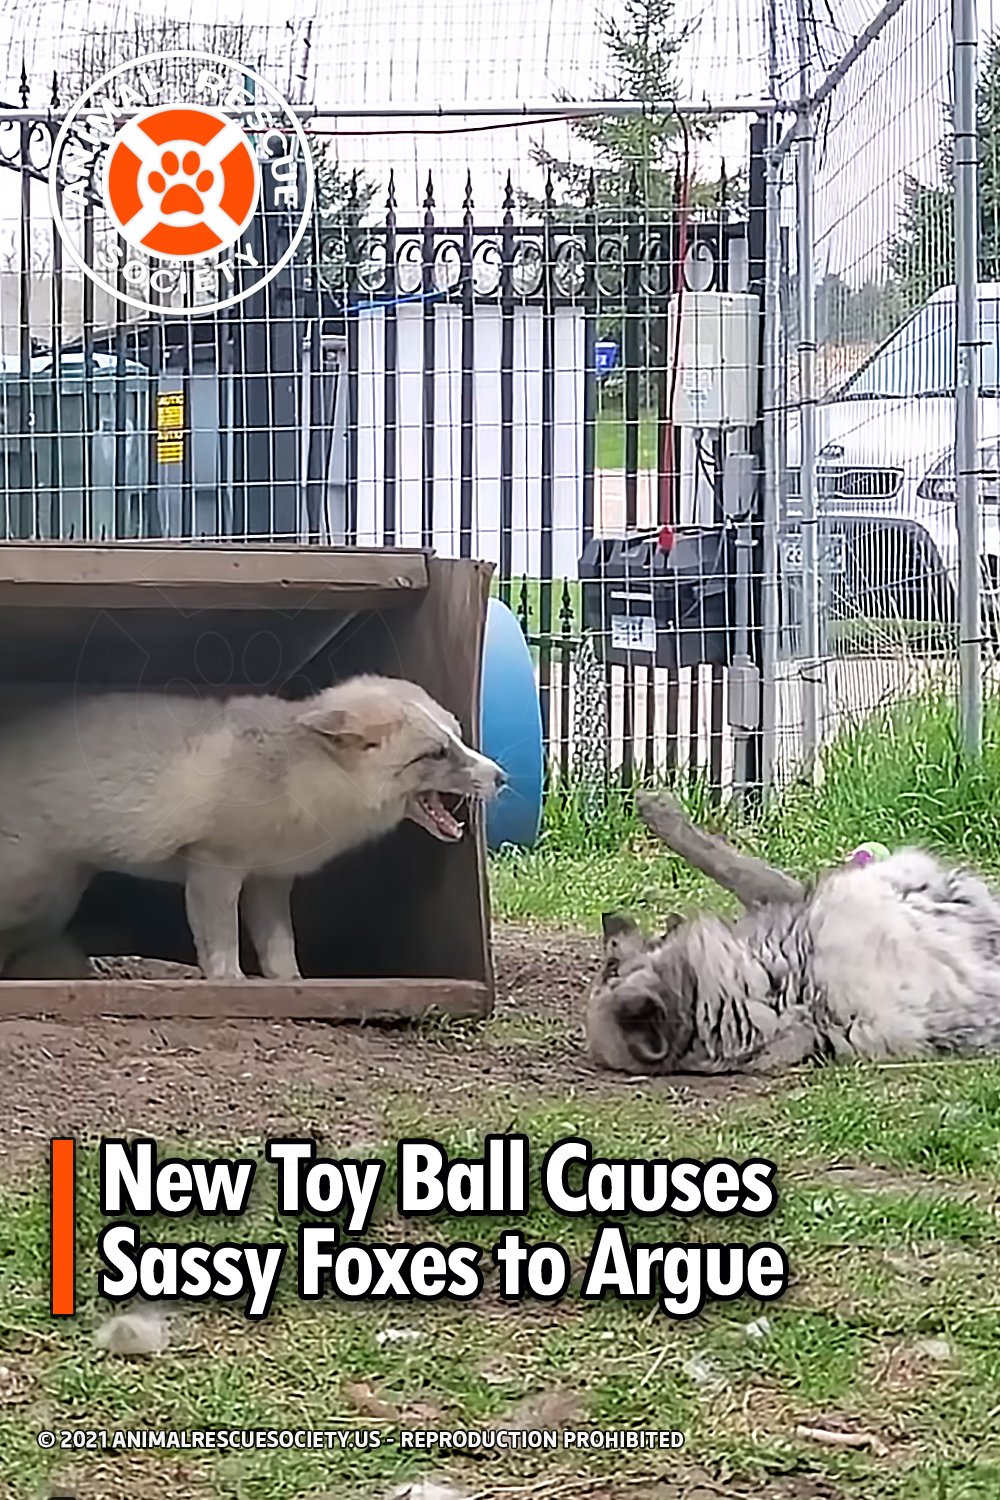 New Toy Ball Causes Sassy Foxes to Argue